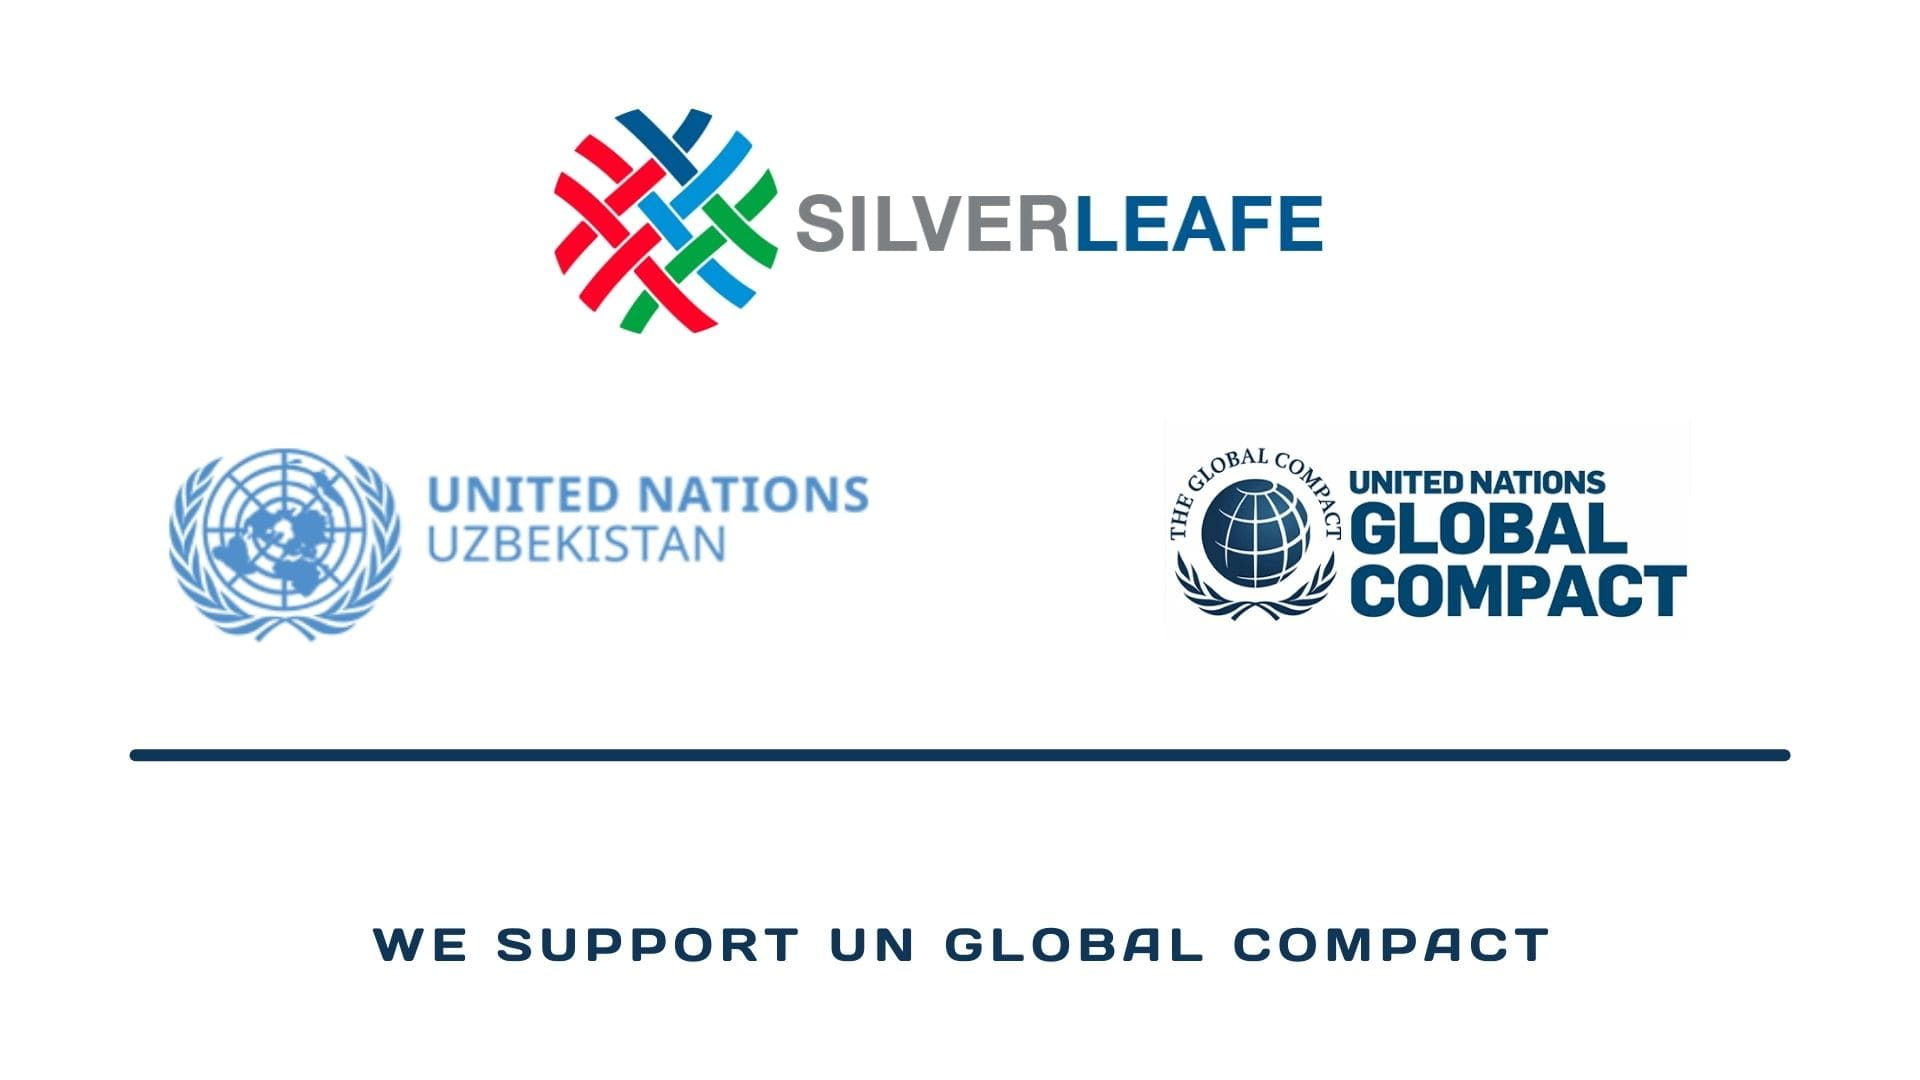 Silverleafe support UN global compact 1